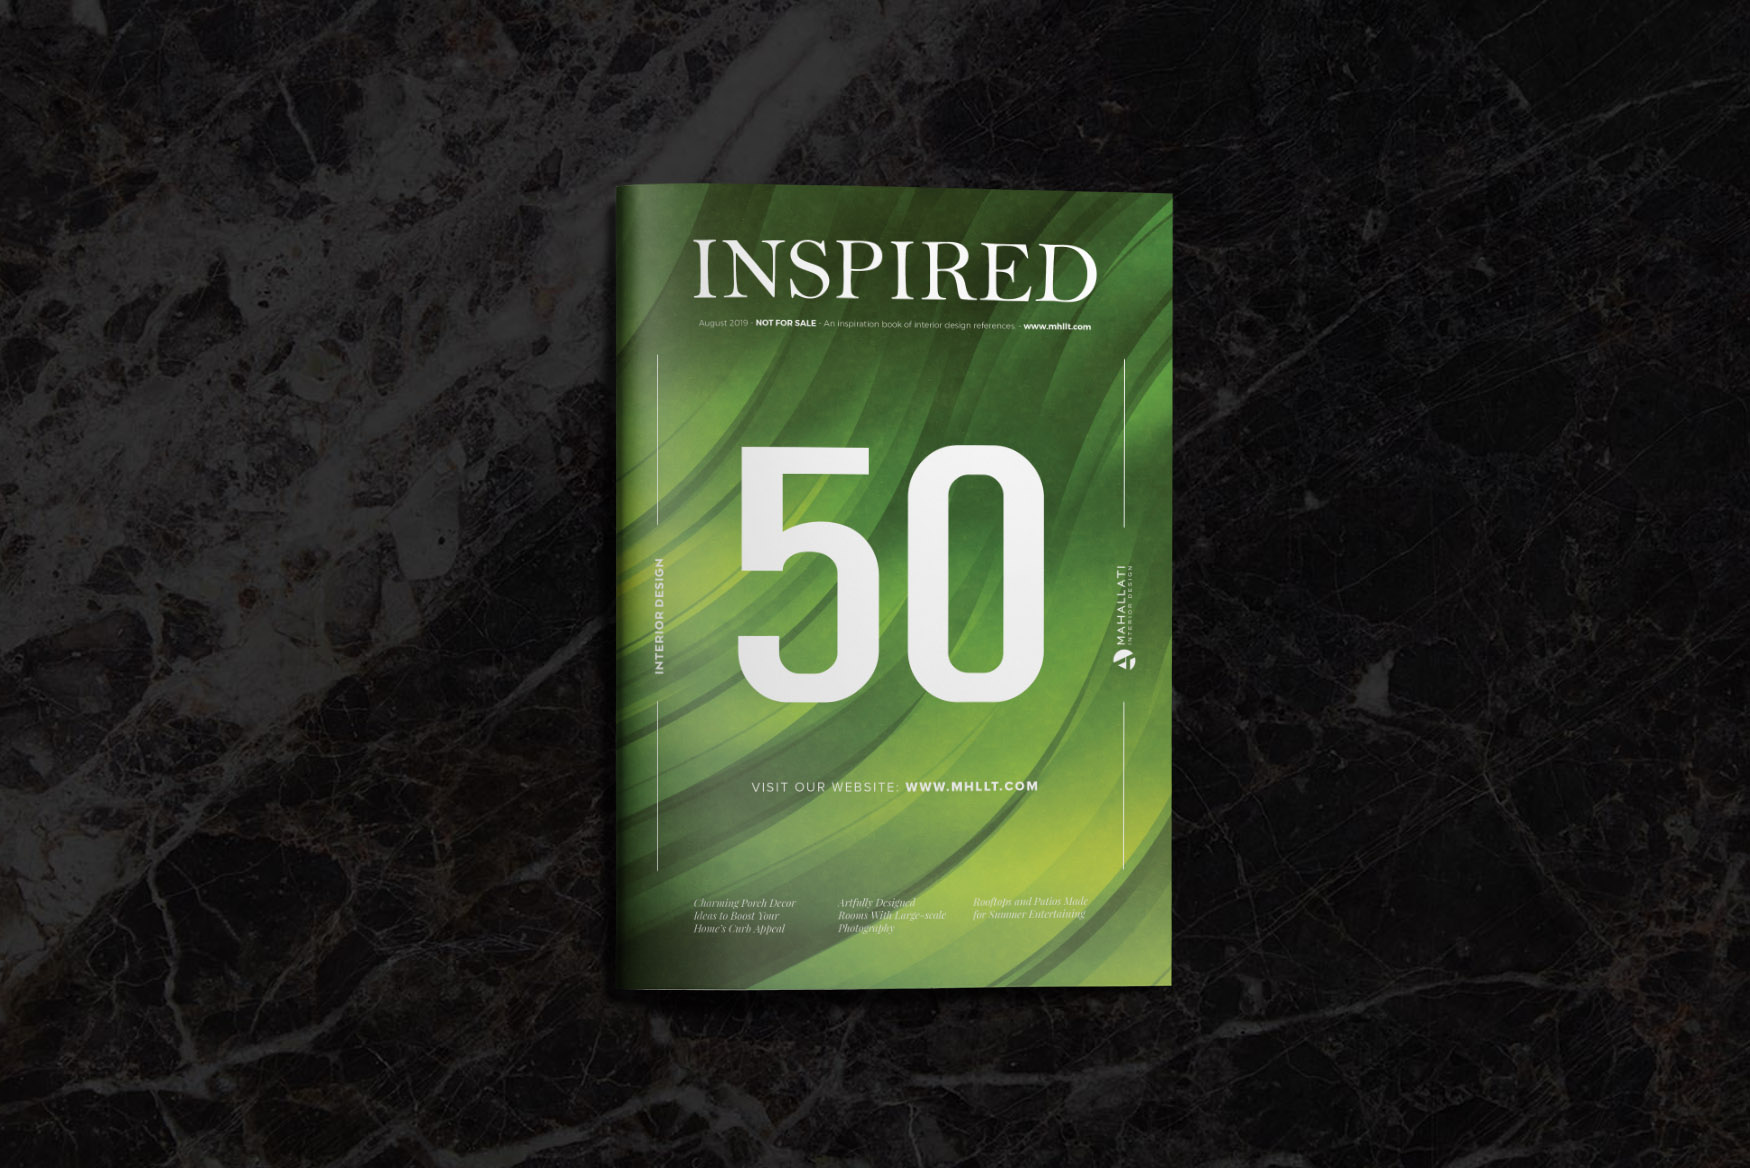 Inspired Vol 50 - August 2019